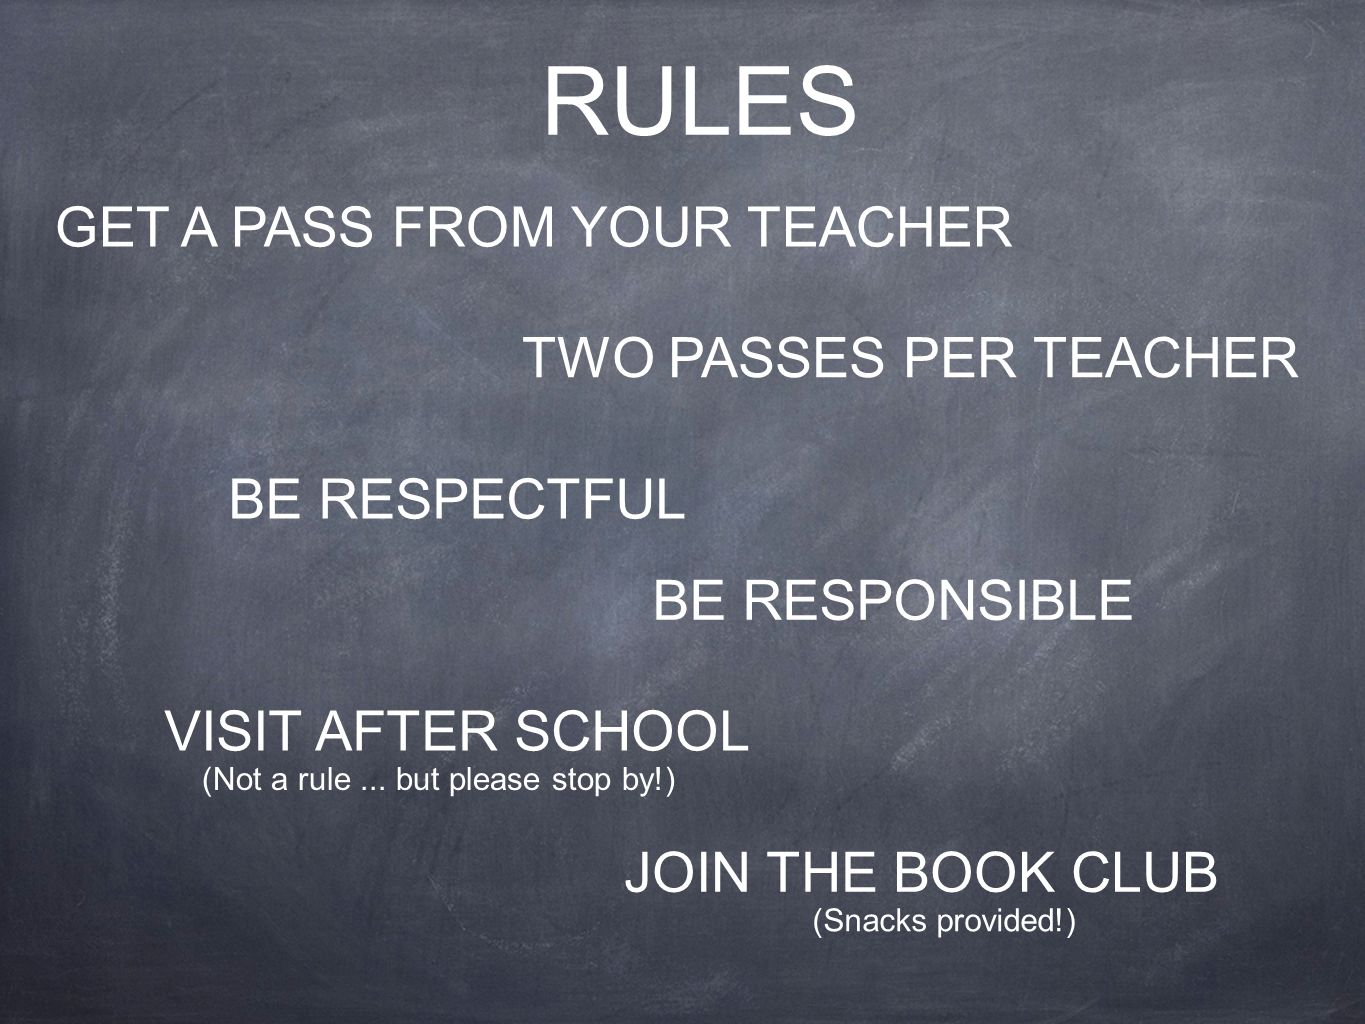 GET A PASS FROM YOUR TEACHER TWO PASSES PER TEACHER VISIT AFTER SCHOOL JOIN THE BOOK CLUB BE RESPECTFUL BE RESPONSIBLE RULES (Snacks provided!) (Not a rule...